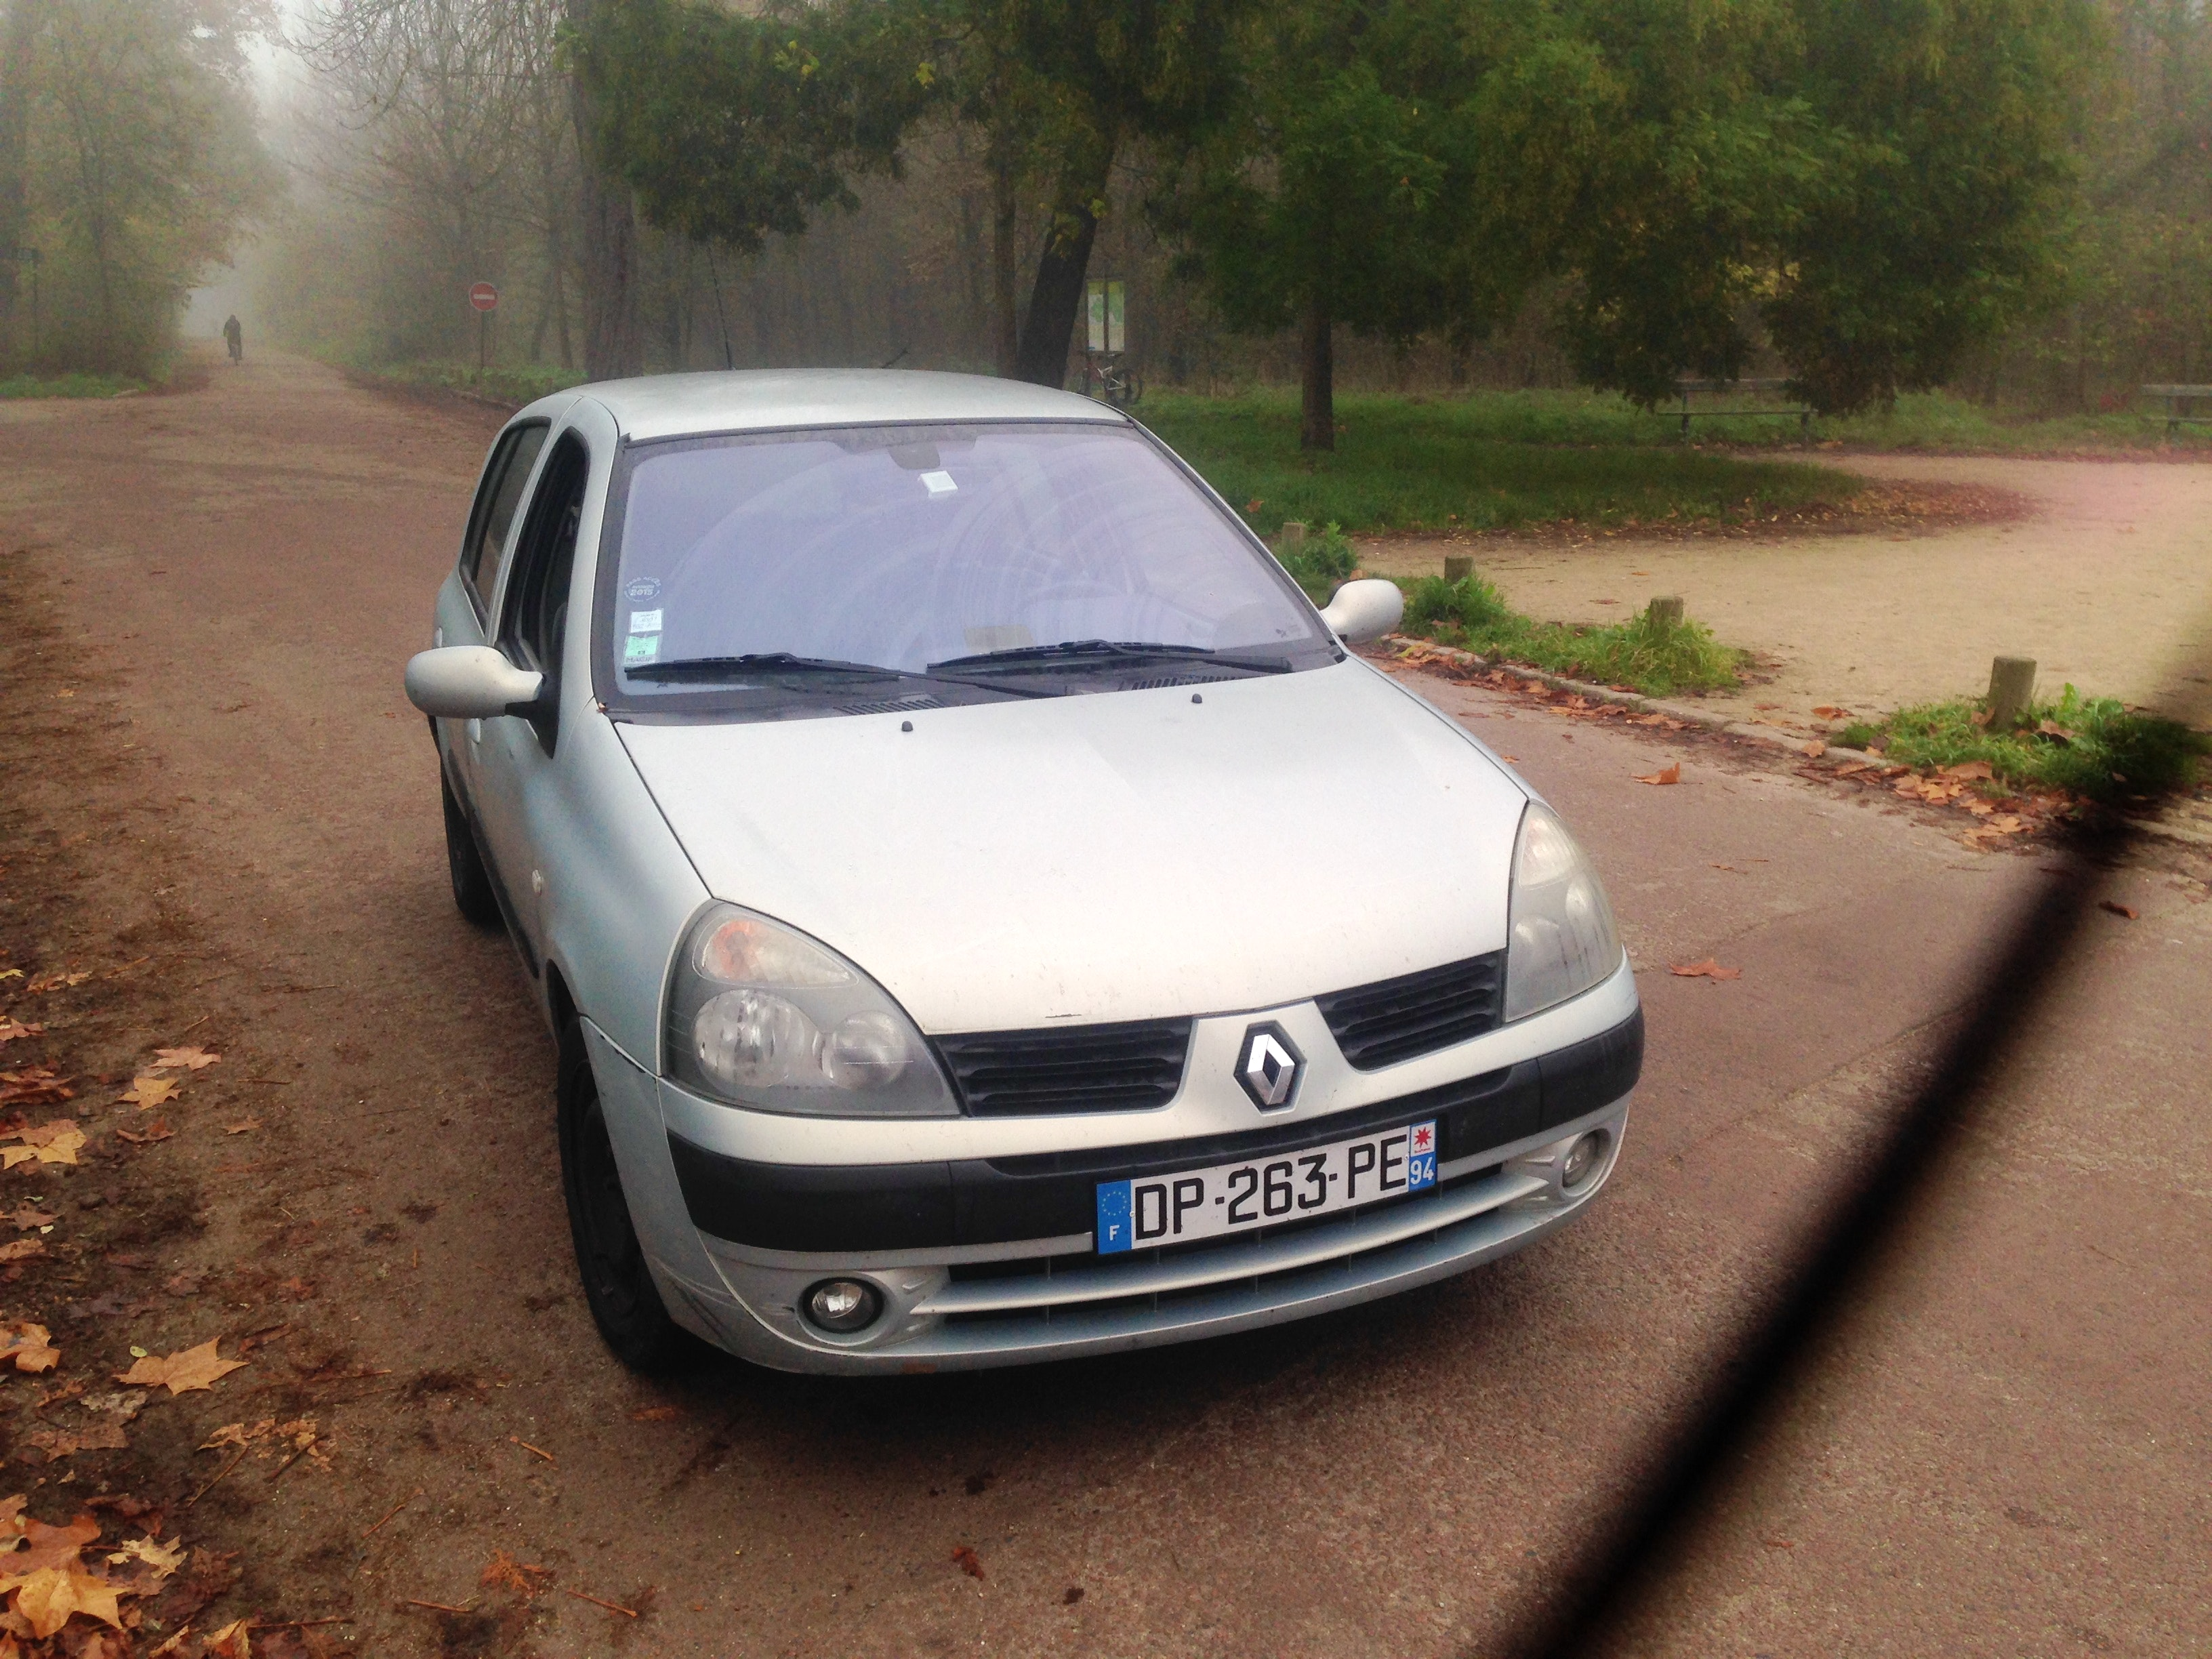 Renault Clio II 1.4 16V Automatique 2004, 2004, Essence, automatique - Citadine Paris (75)